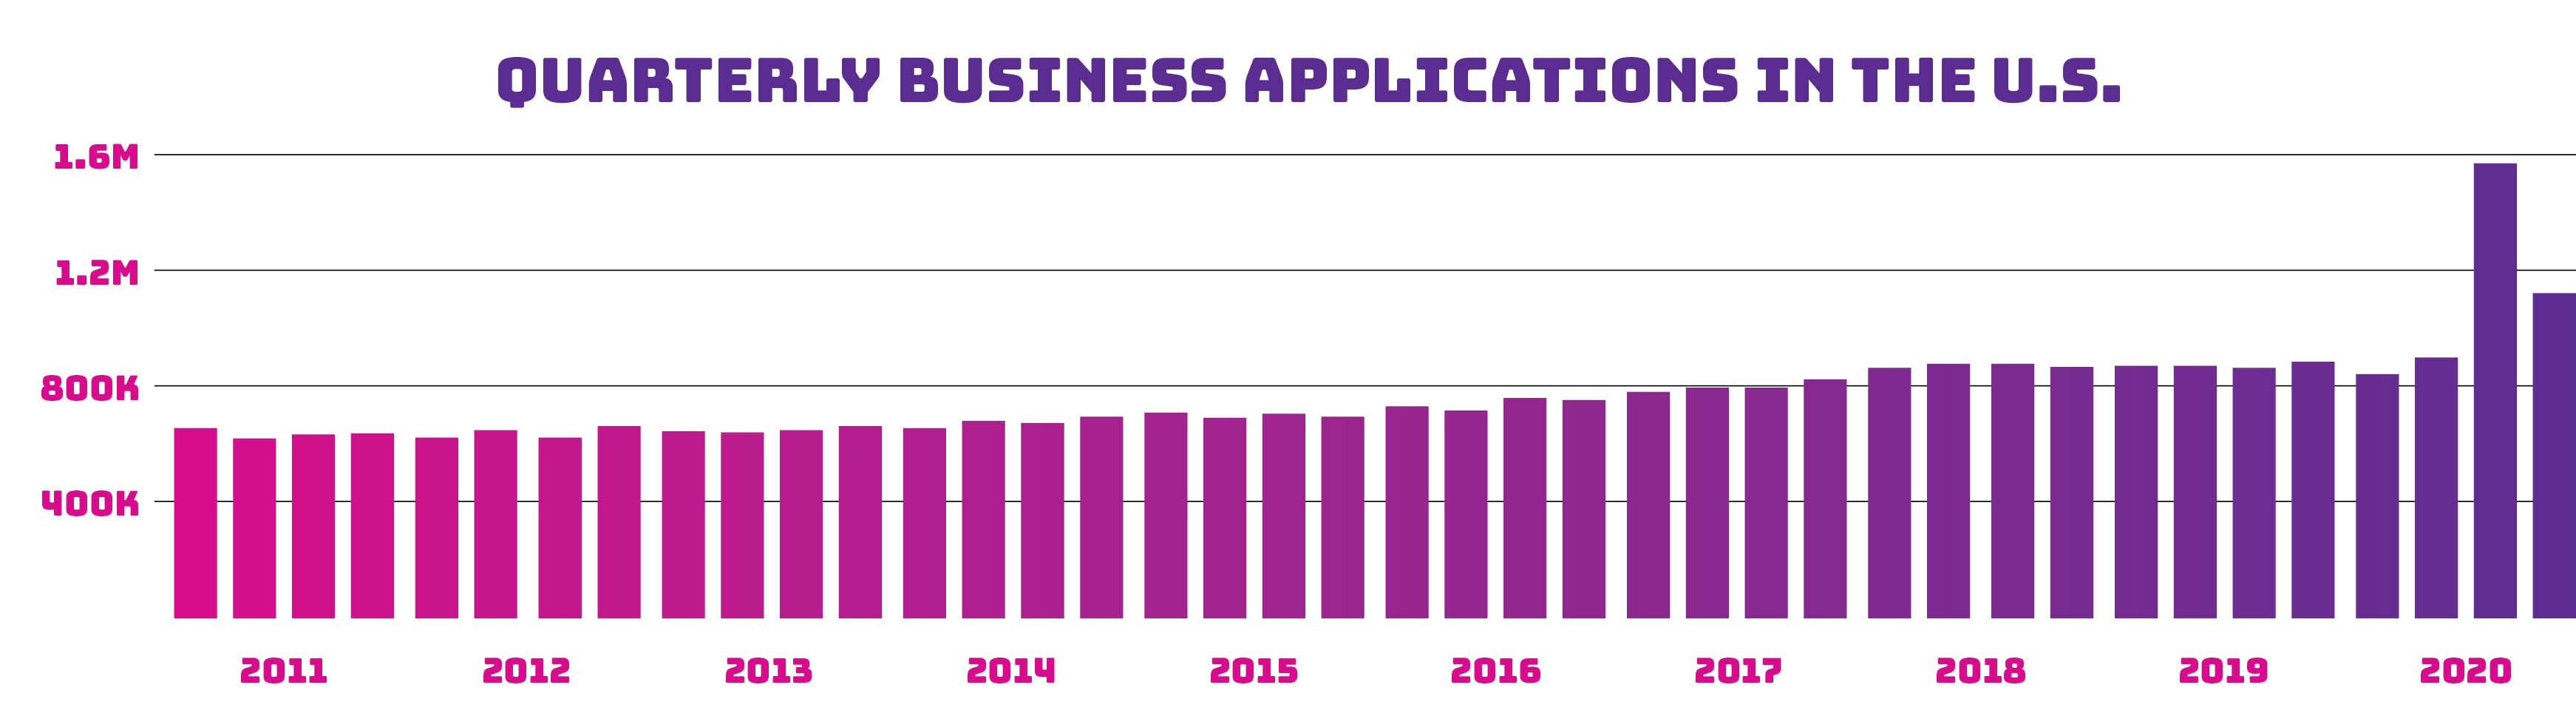 Applications for new employer identification numbers hovered around 860,000 per quarter in 2018 and 2019, according to Census data, then surged to 1.6 million applications in the third quarter of 2020 and another 1.1 million in the year's last quarter. - U.S. CENSUS BUREAU / BUSINESS FORMATION STATISTICS